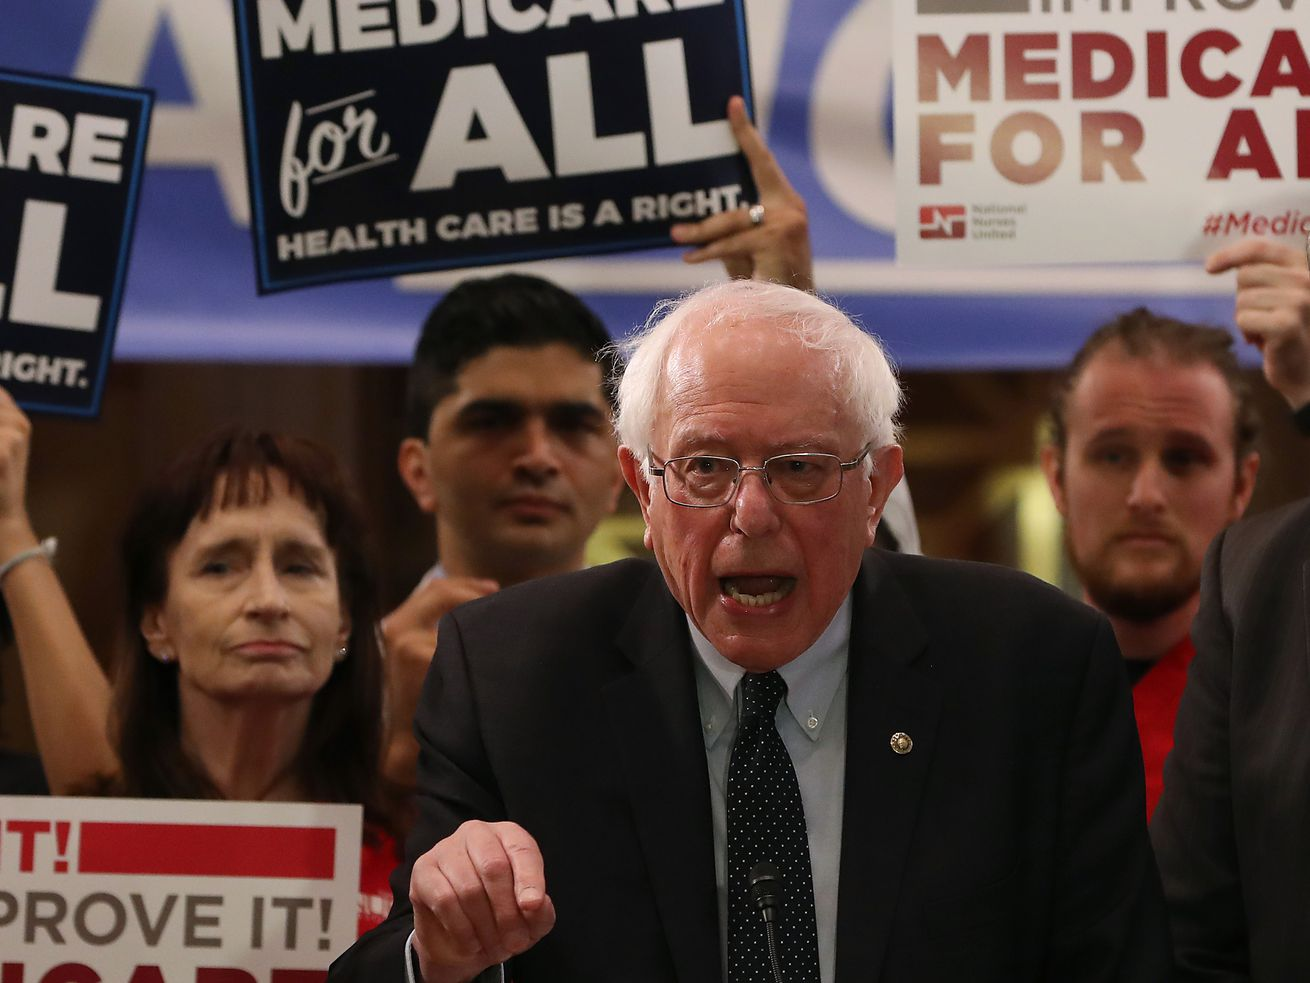 Sen. Bernie Sanders (I-VT) speaks while introducing health care legislation on Capitol Hill, on April 9, 2019, in Washington, DC.